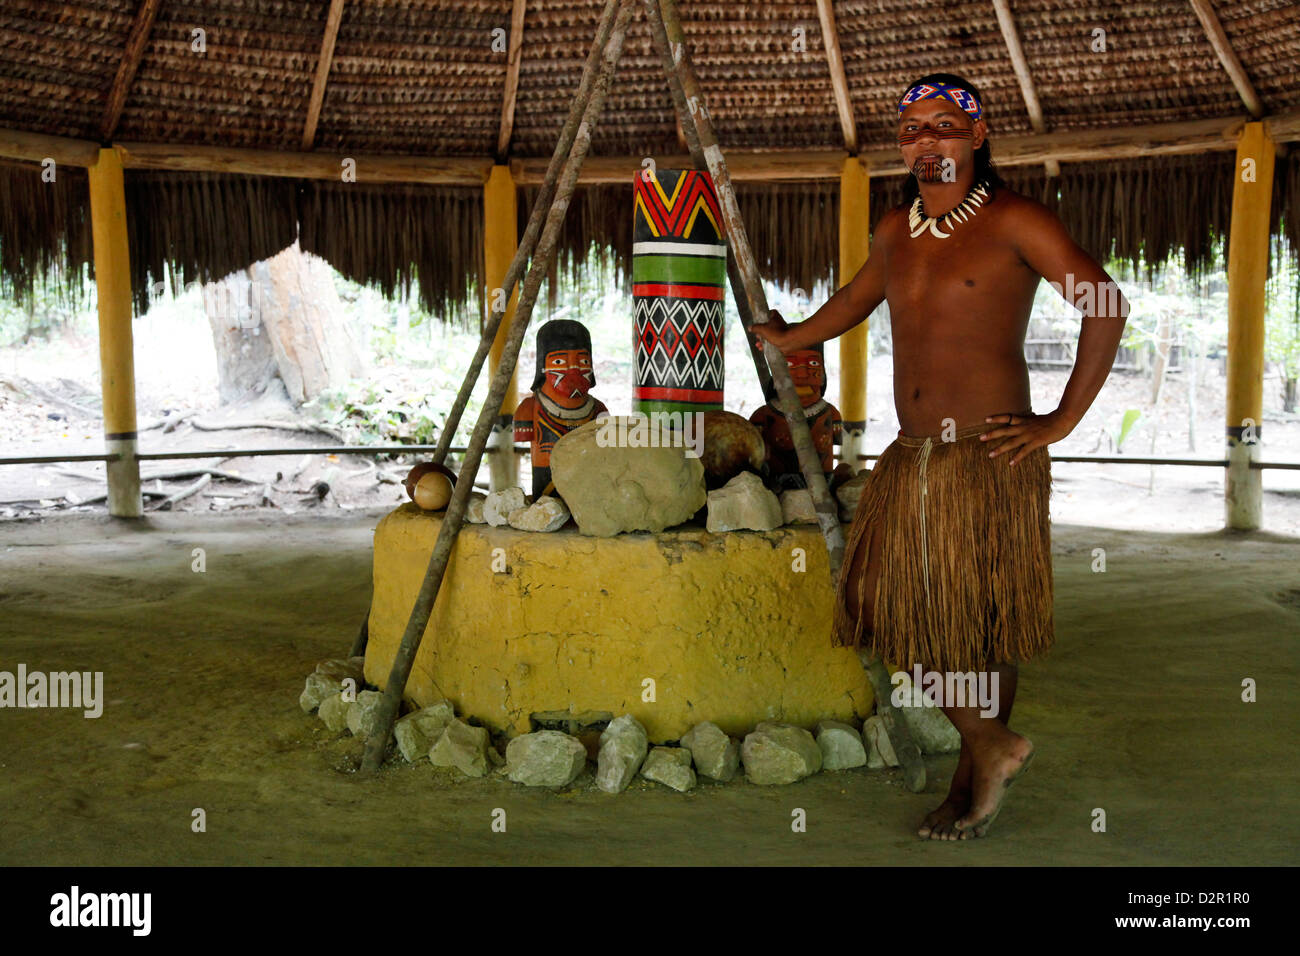 The ceremonial house of the Pataxo Indian people at the Reserva Indigena da Jaqueira near Porto Seguro, Bahia, Brazil - Stock Image